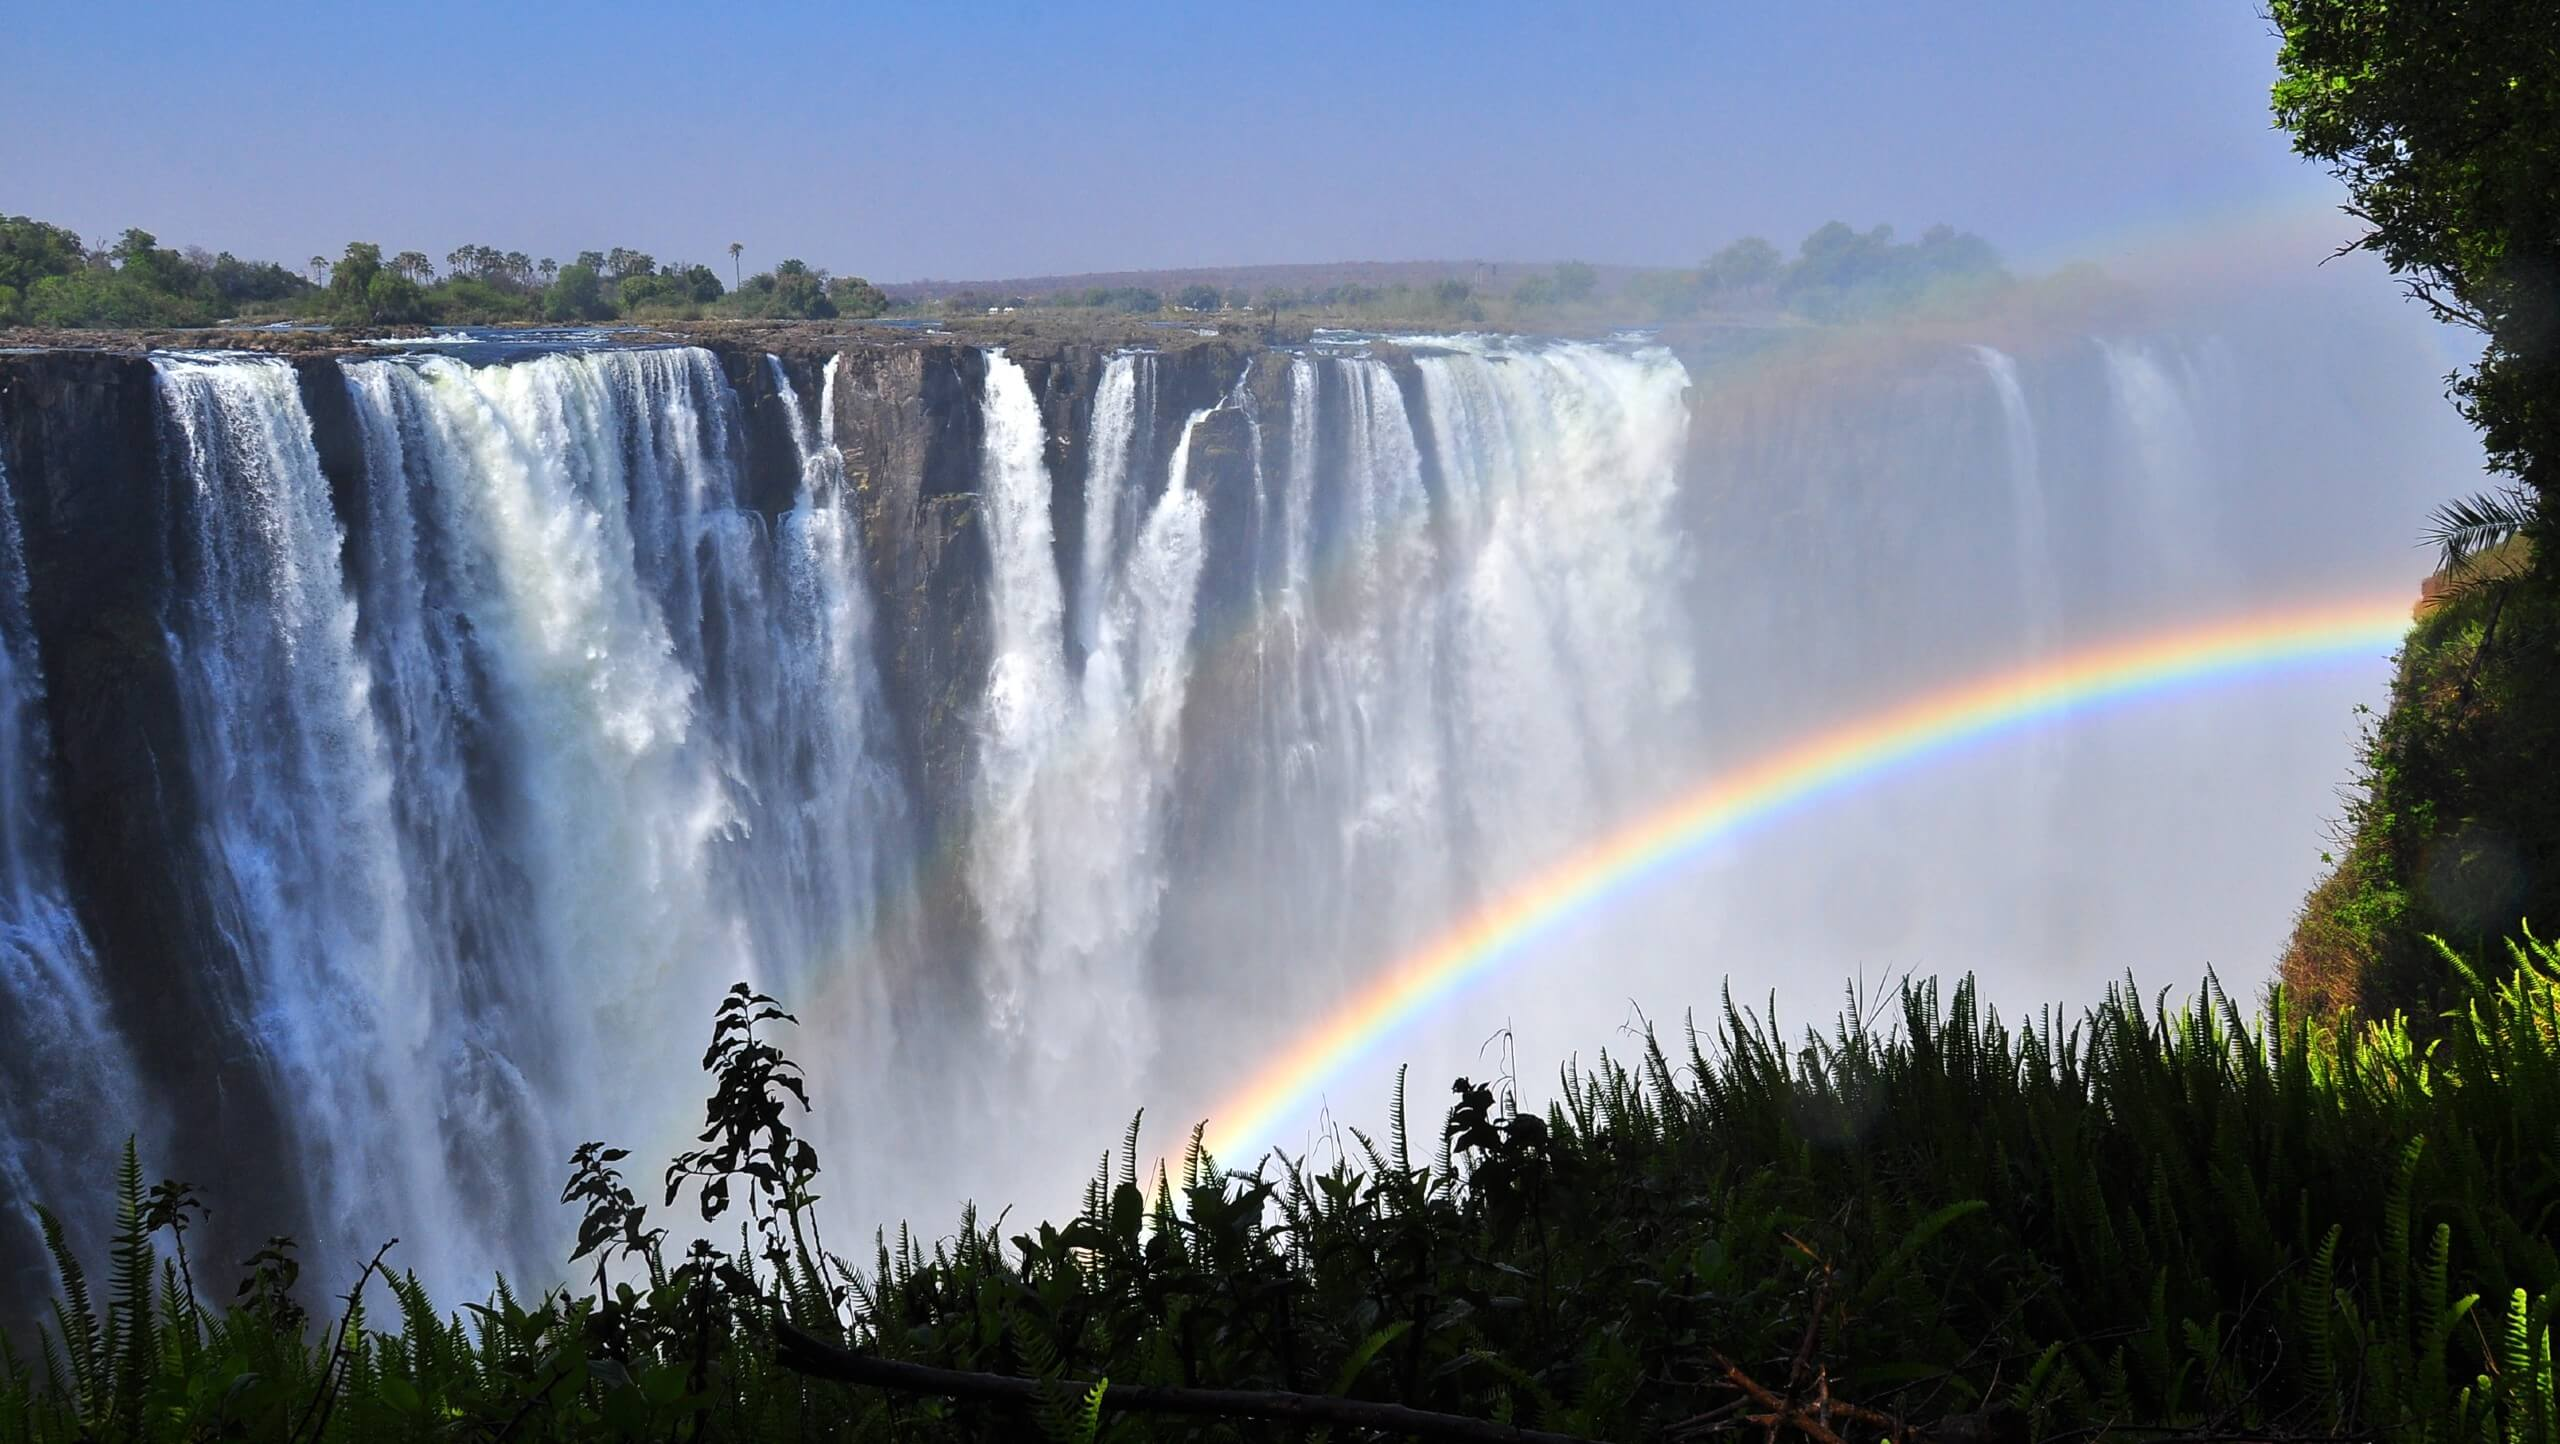 Southern Africa Self-Drive Camping Tour